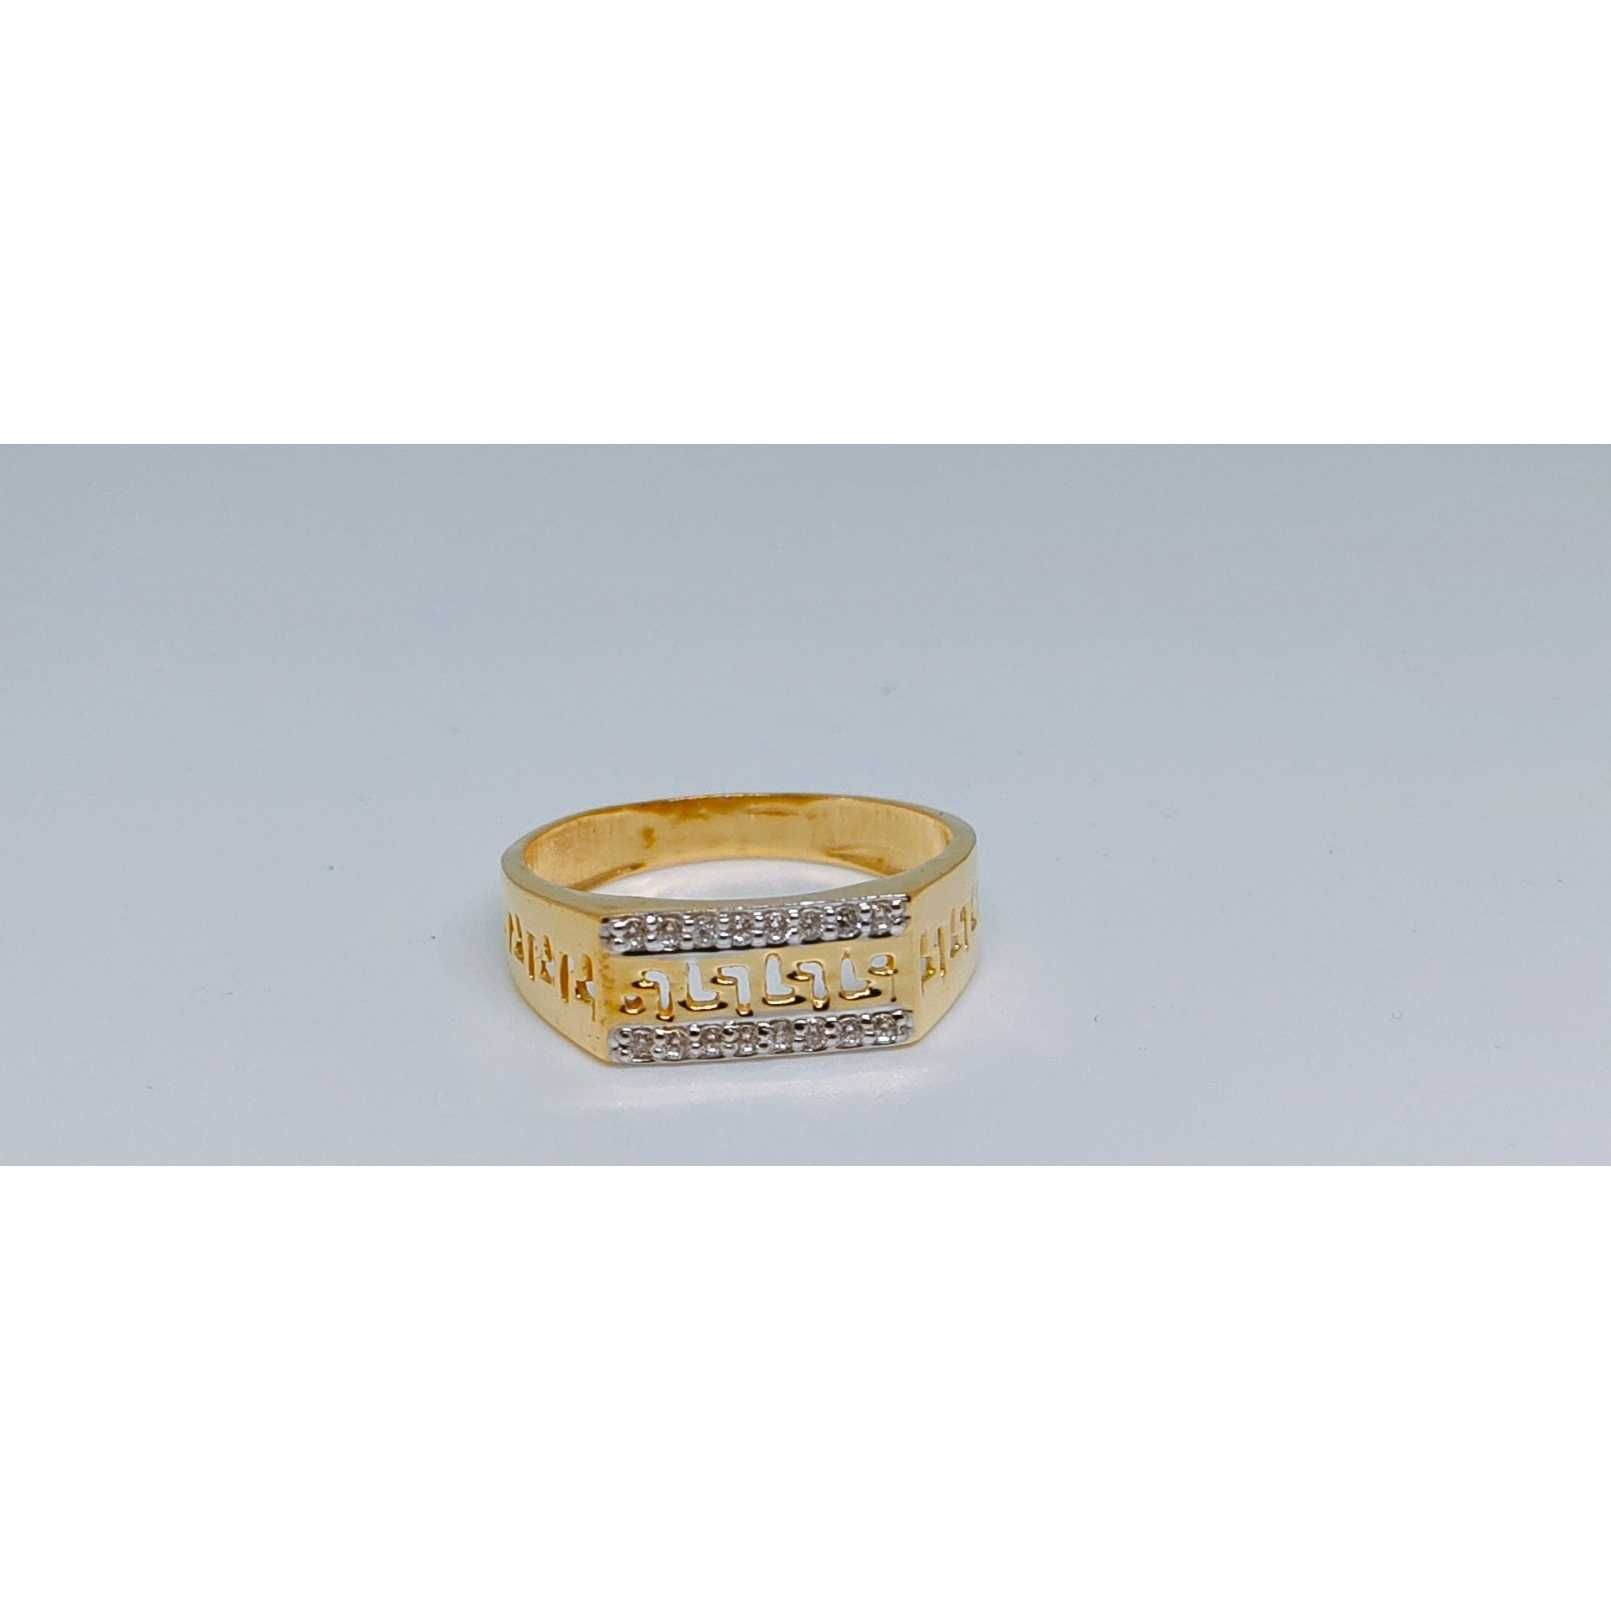 916 Gents Fancy Gold Ring Gr-28646